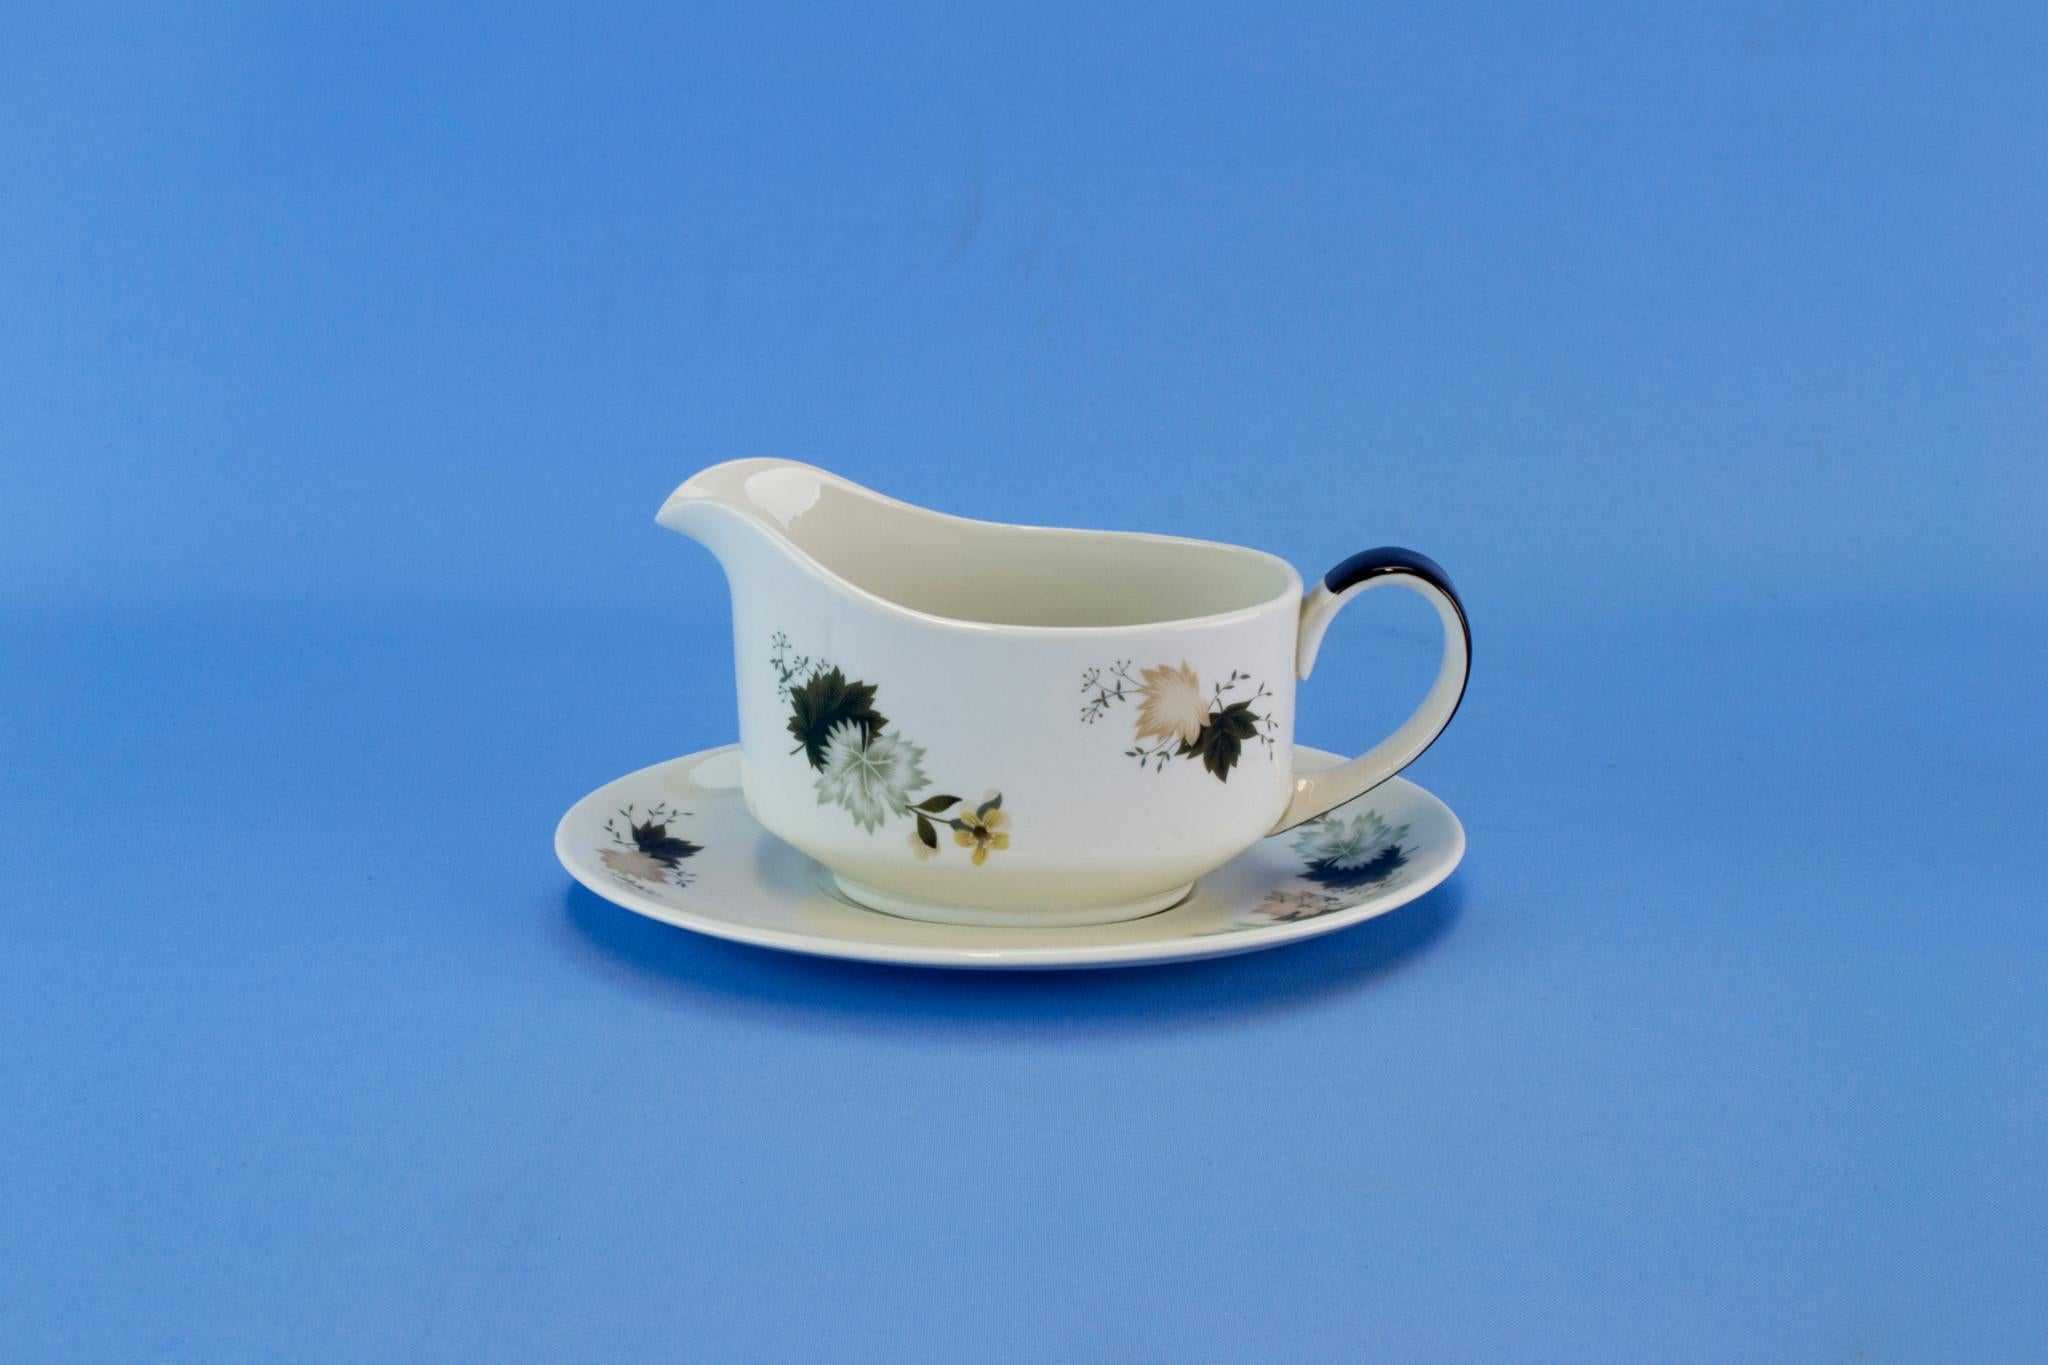 Gravy Boat on Plate by Royal Doulton, English Circa 1960